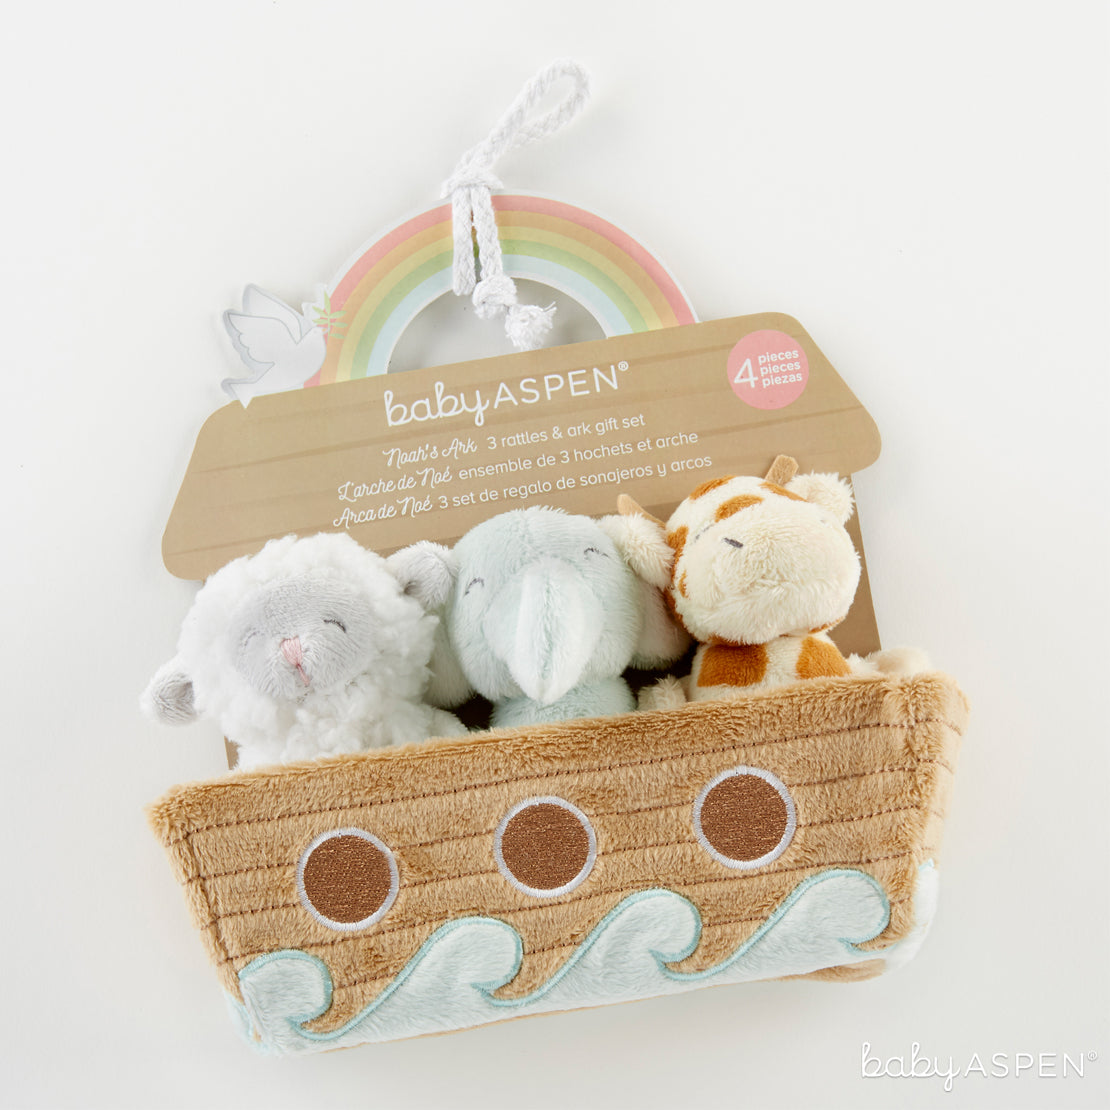 Noah's Ark Rattle Set | Noah's Ark Themed Gifts For Your Biblical Baby | Baby Aspen